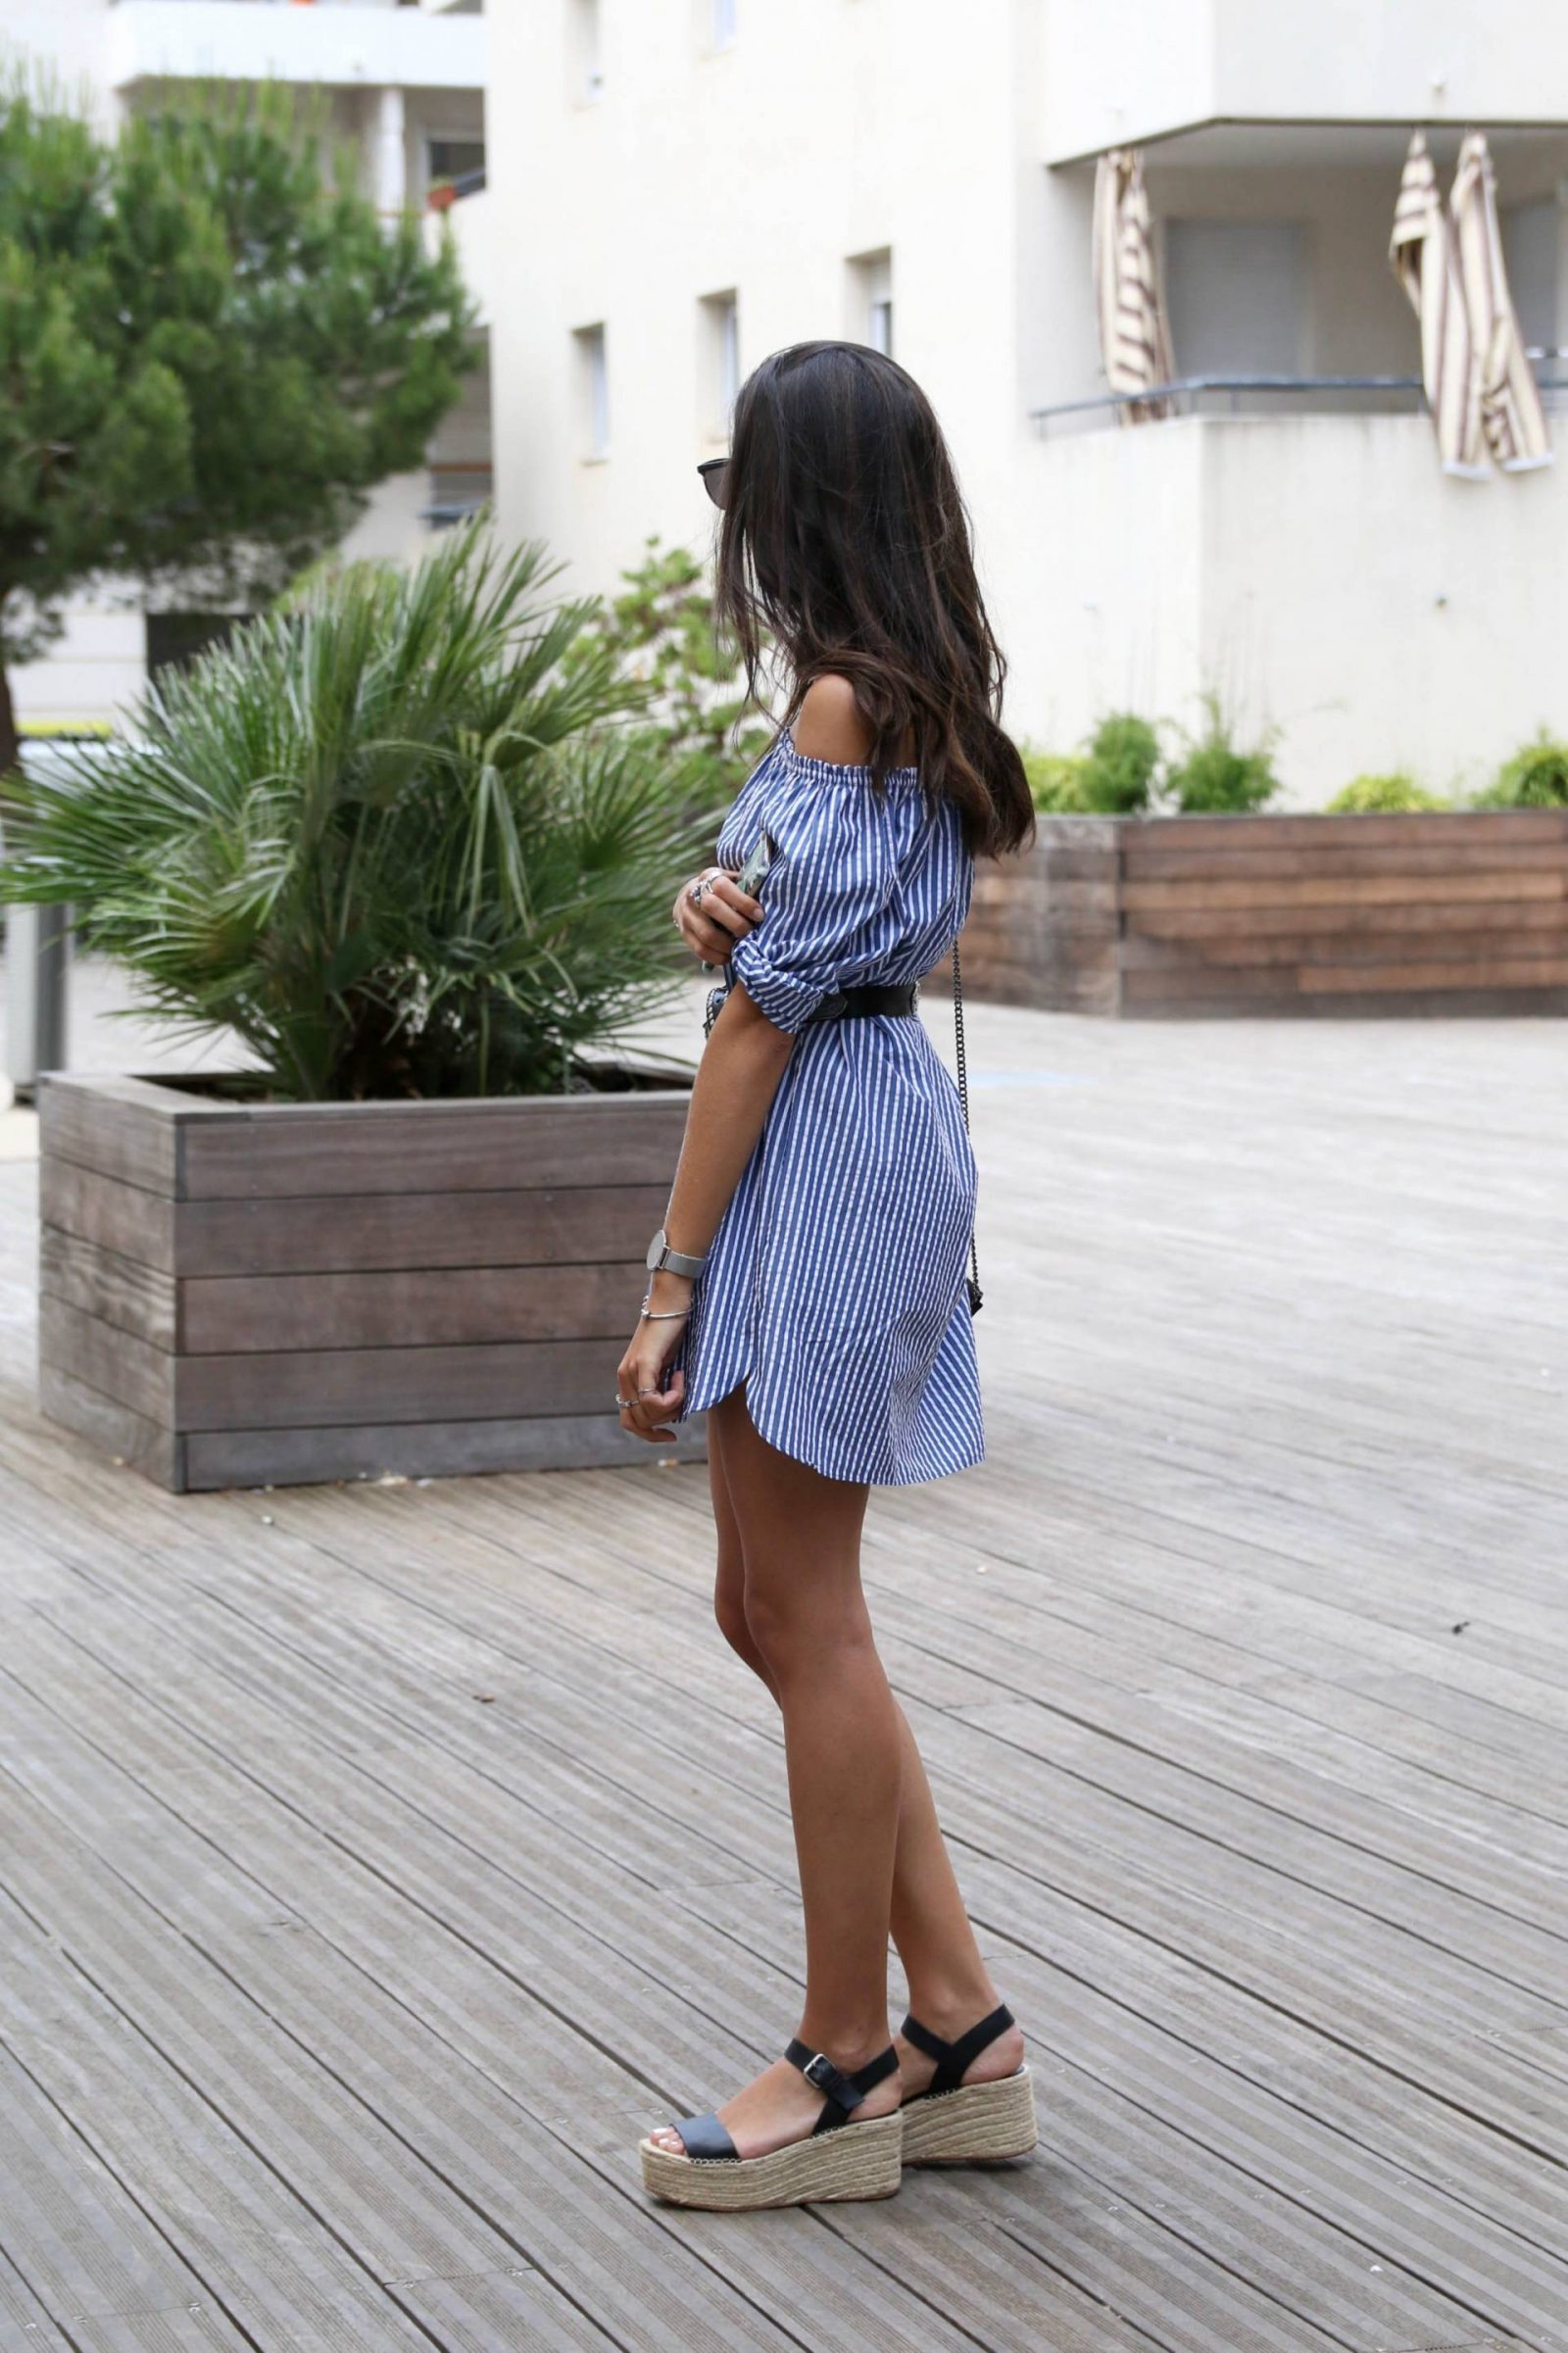 b691c622c965 This Is How You Should Wear The Off-The-Shoulder Trend - Just The Design